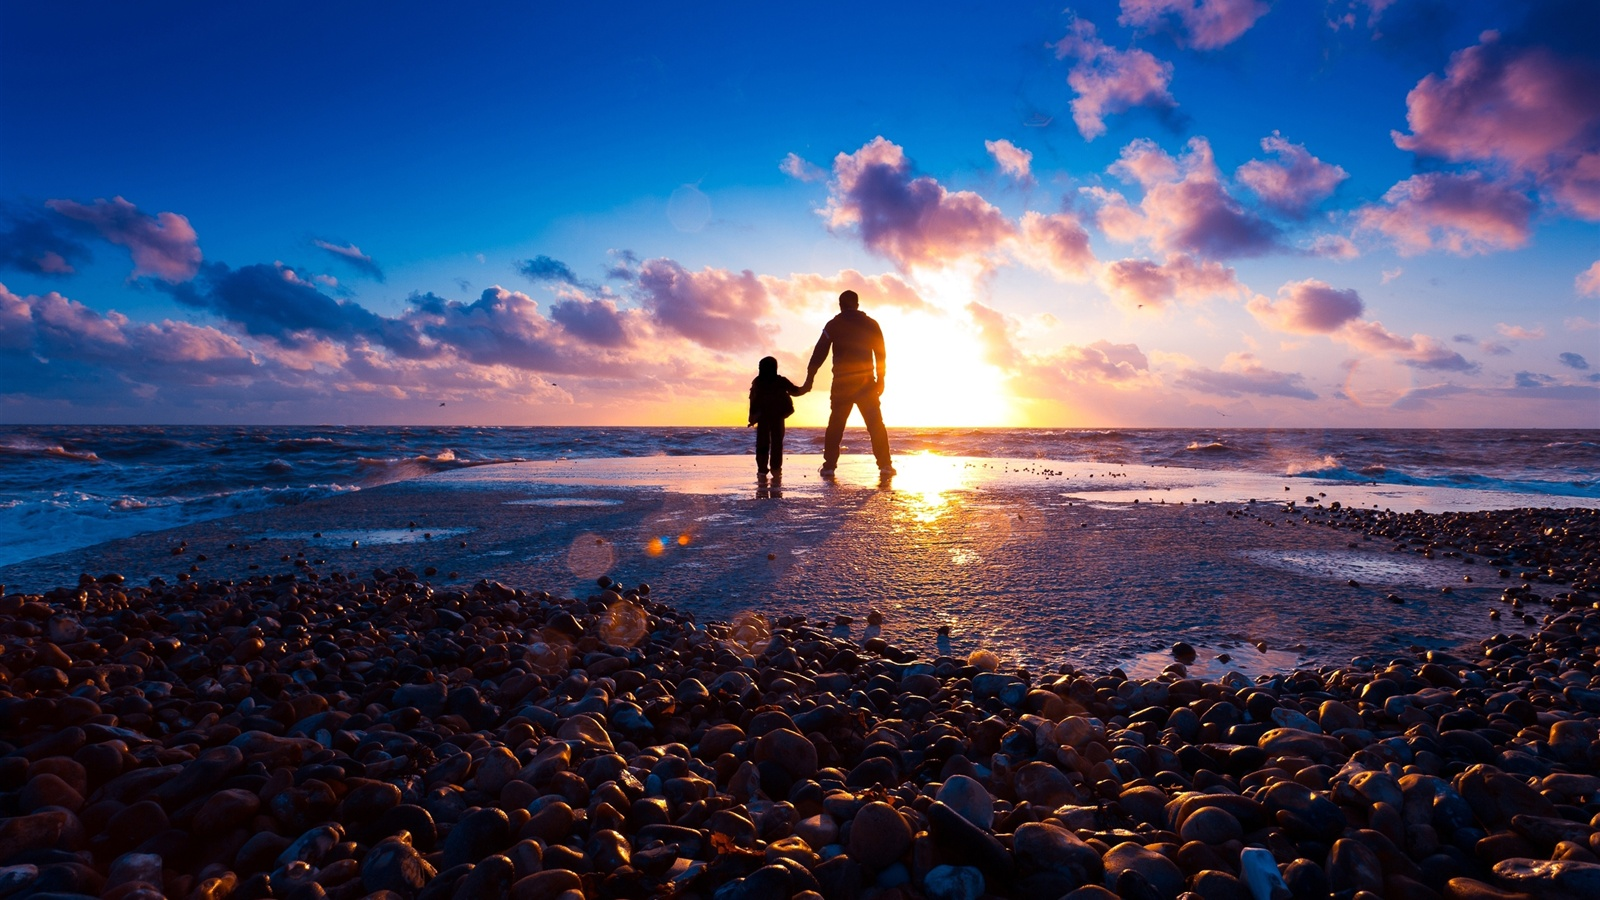 Walking on the beach in the sunset wallpaper - 1600x900